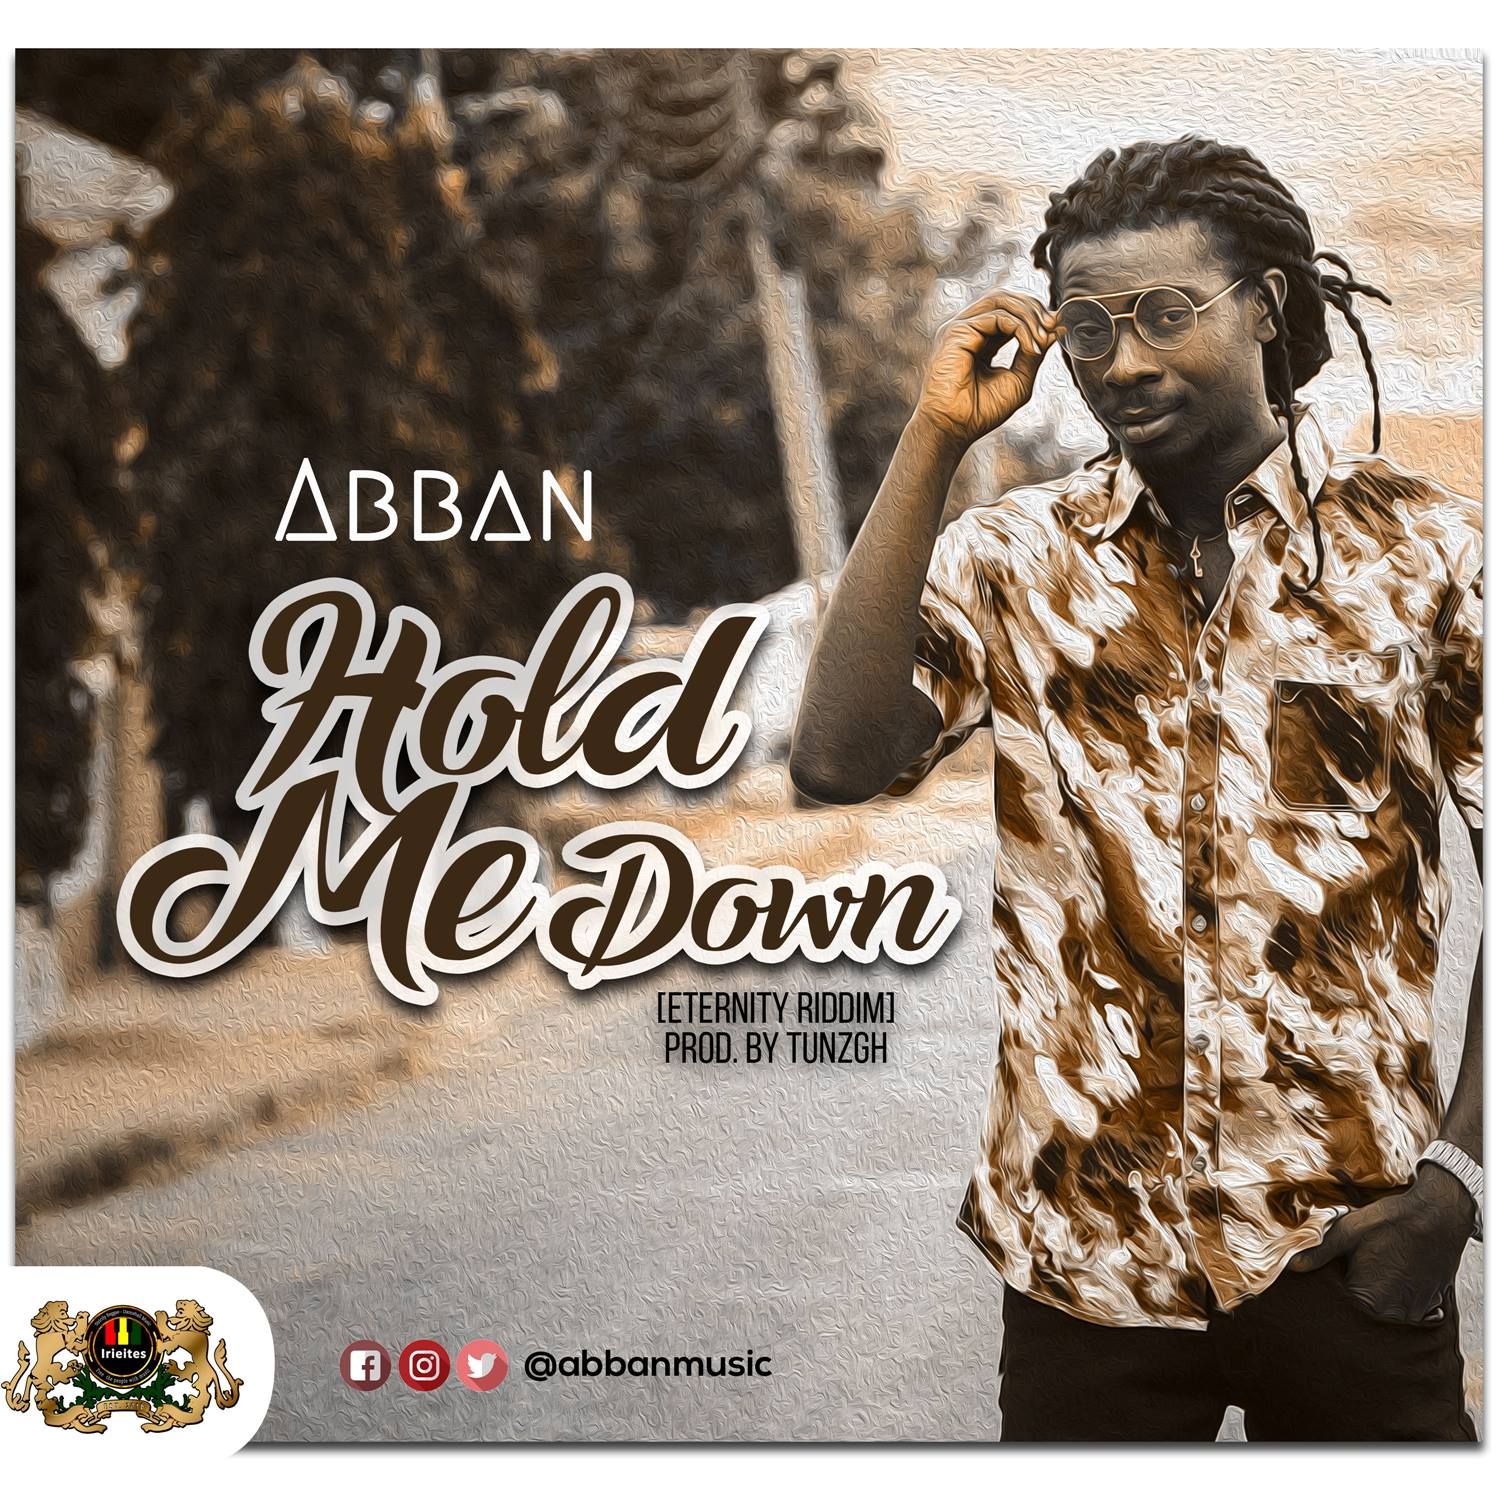 Abban Hold Me Down art